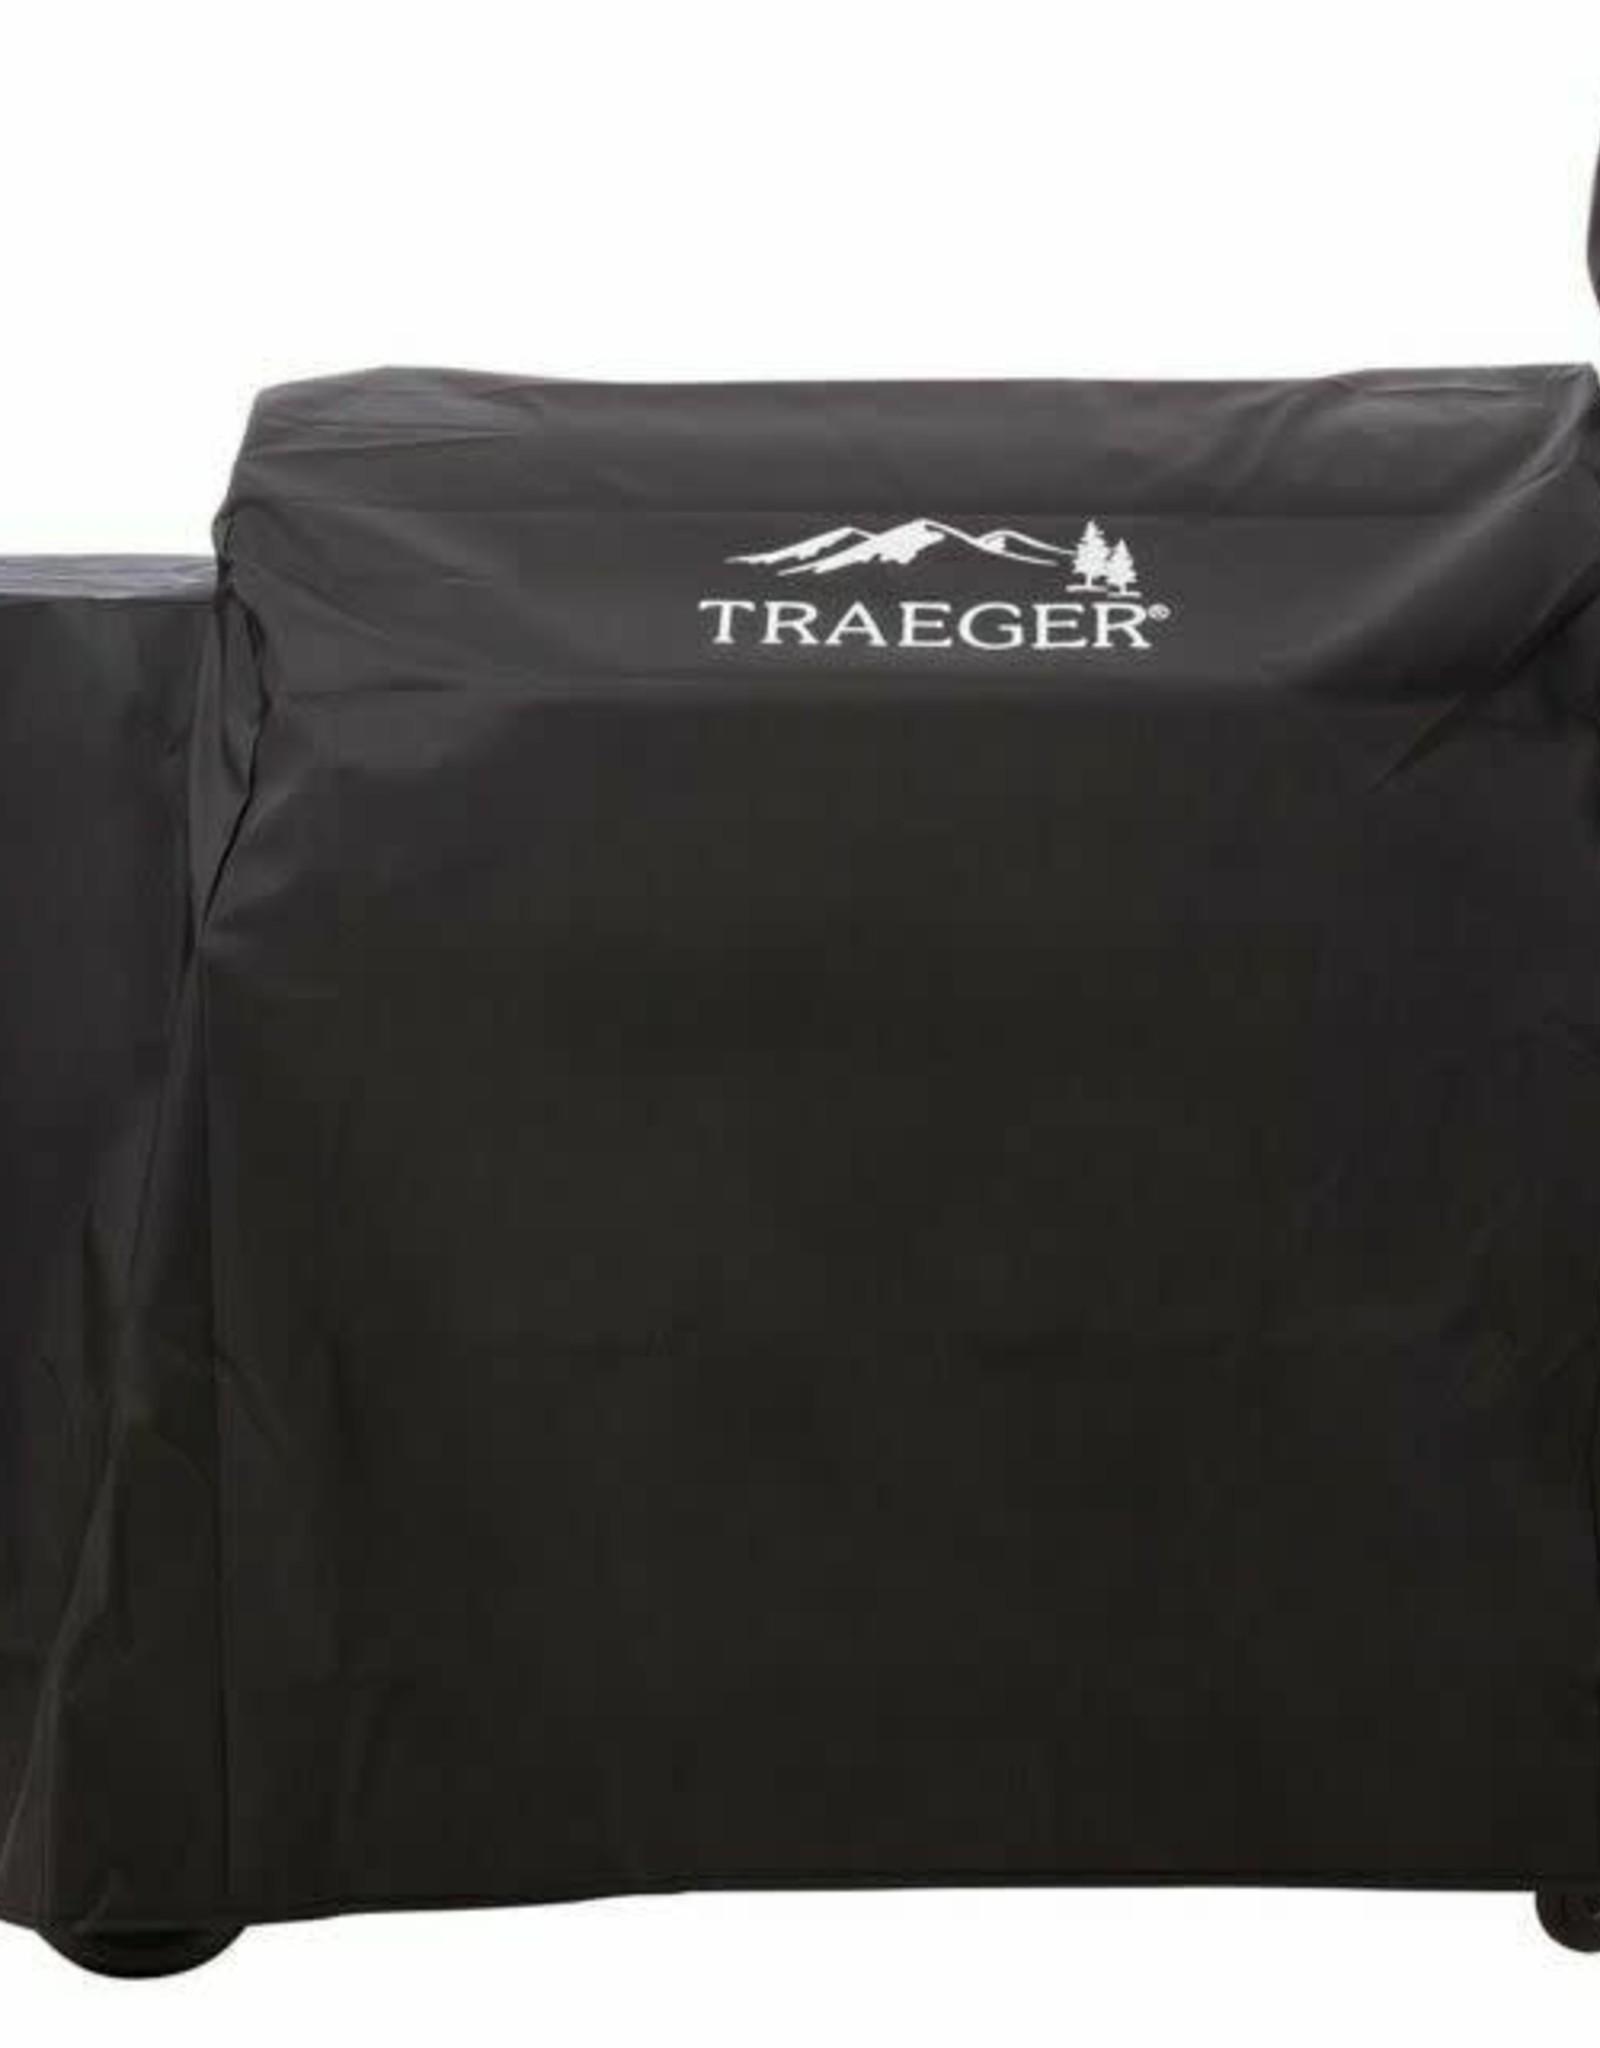 Traeger Traeger Full Length Grill Cover For Pro Series 34 & Texas Pellet Grills - BAC380